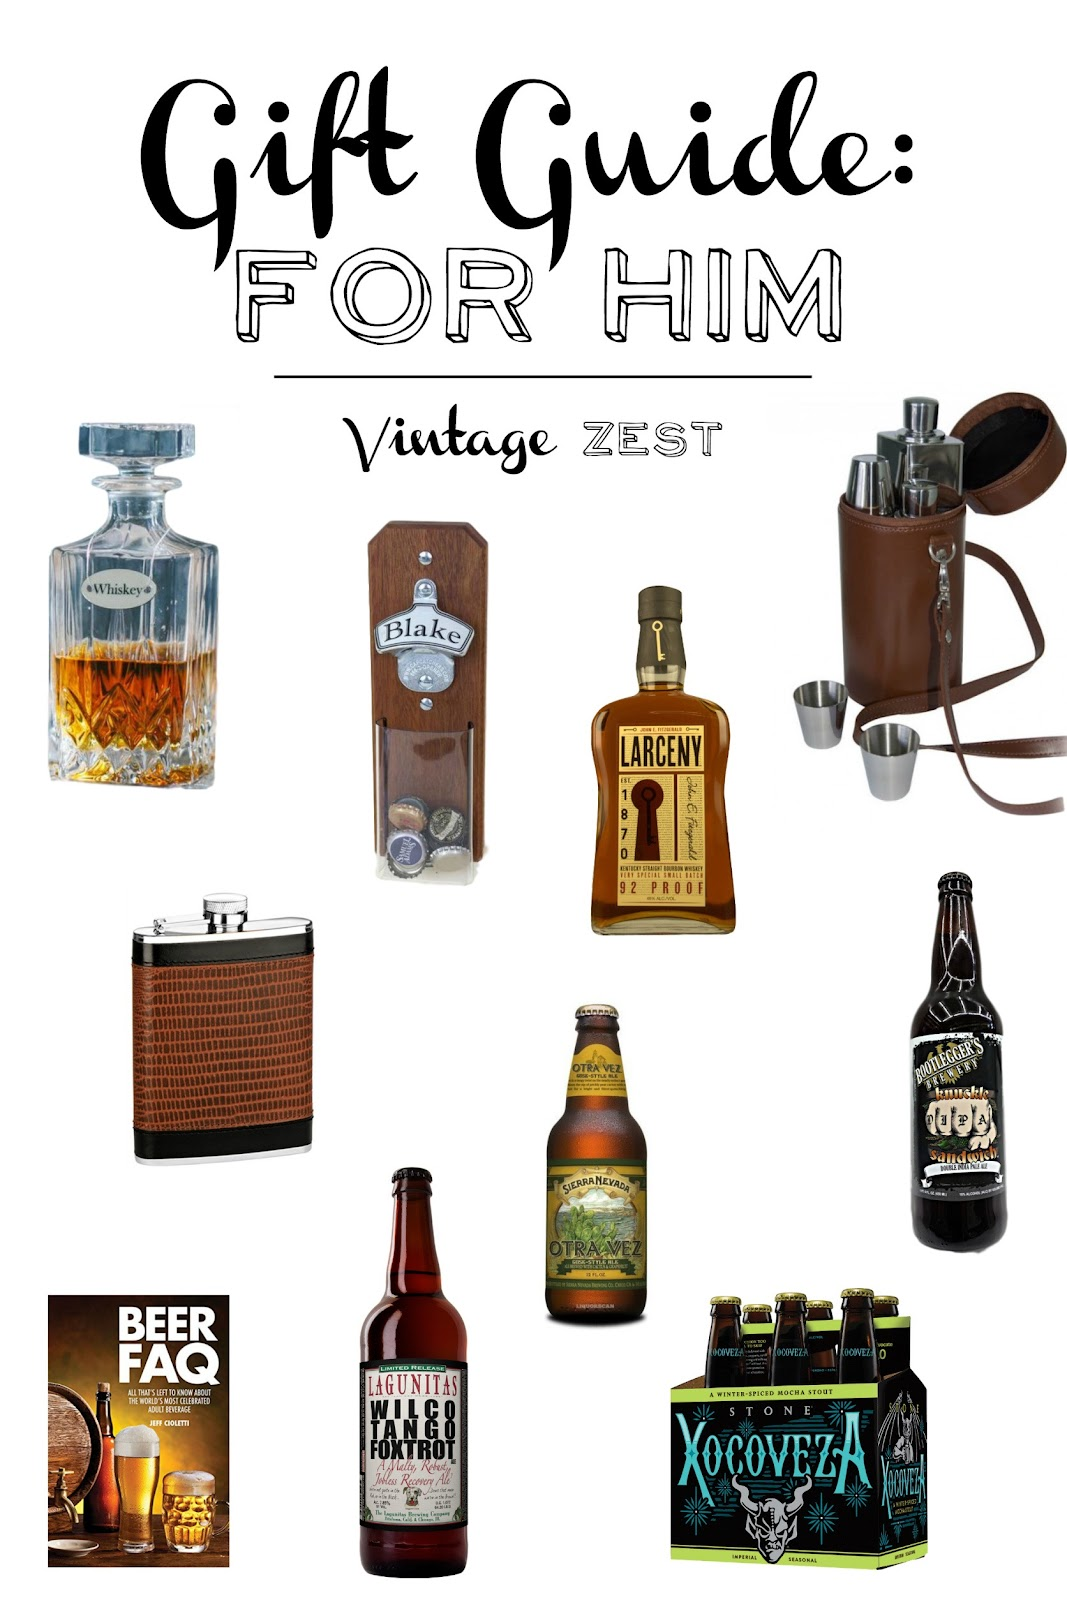 Gift Guide for Him on Diane's Vintage Zest! #giftguide #holiday #shopping #presents #gifts #men